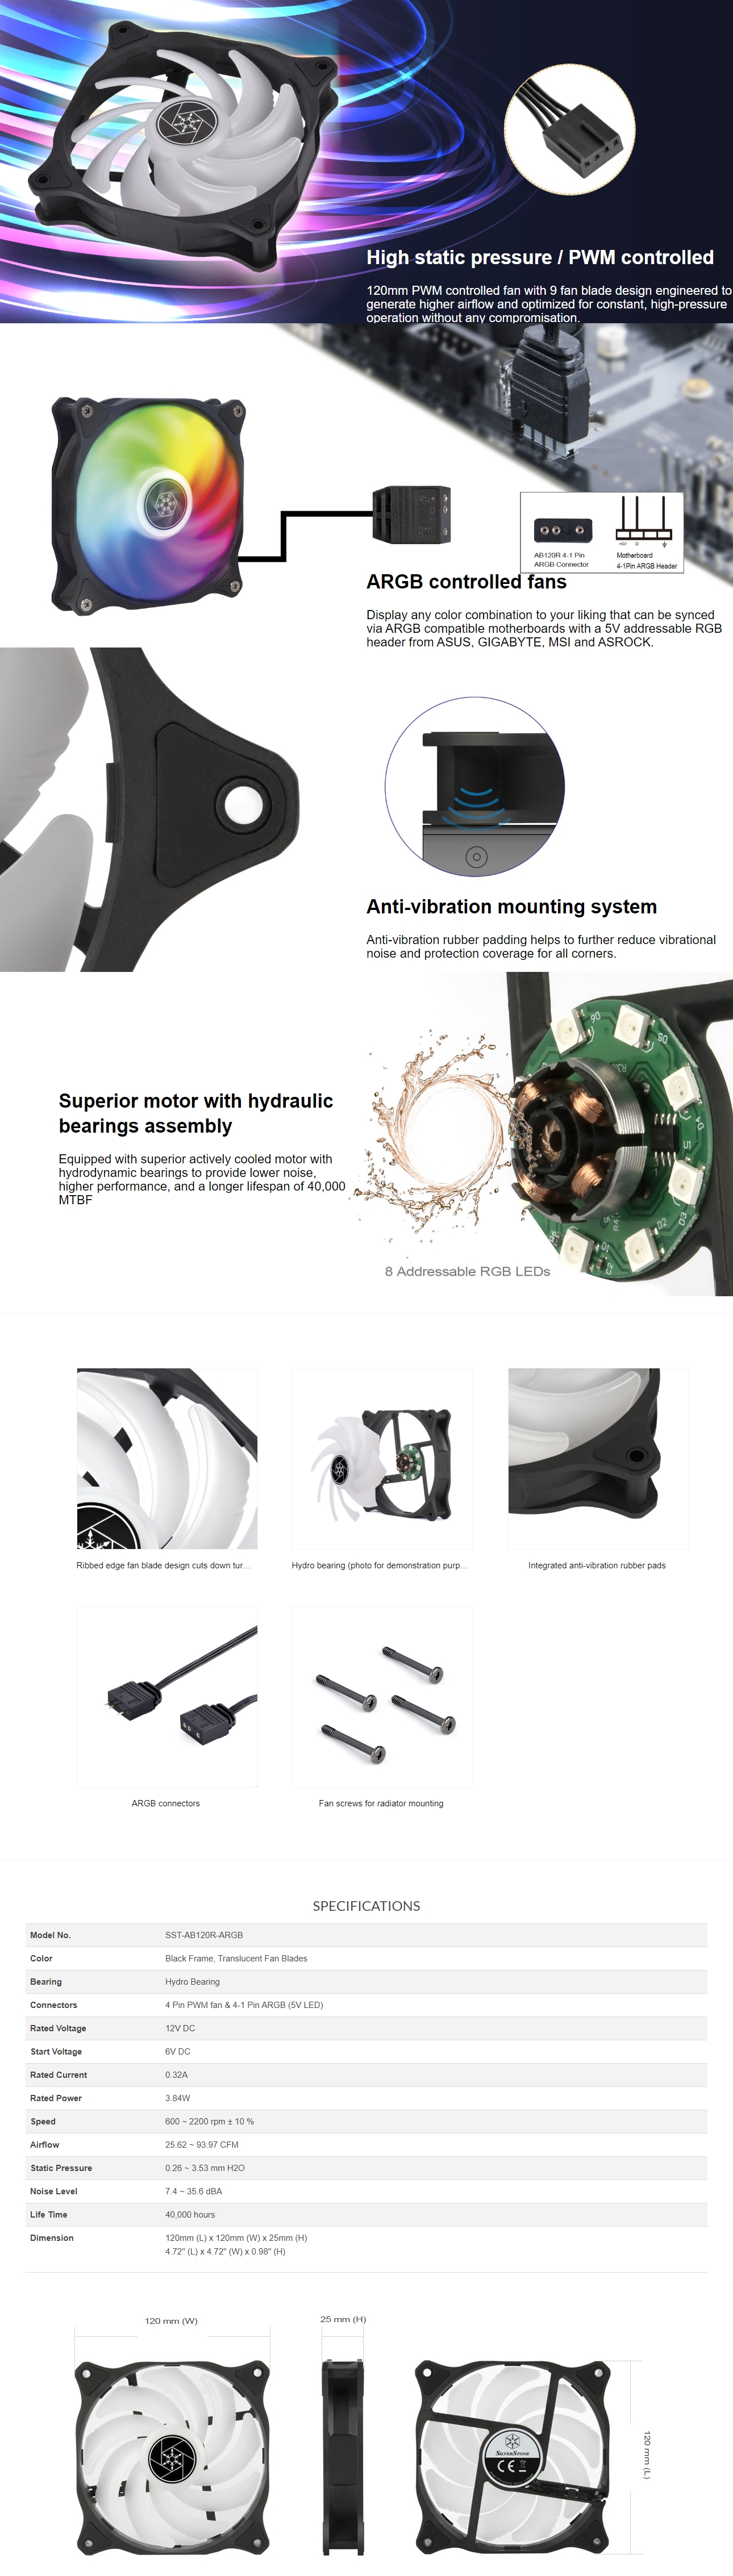 A large marketing image providing additional information about the product SilverStone Air Blazer 120R Addressable RGB 120mm Fan  - Additional alt info not provided